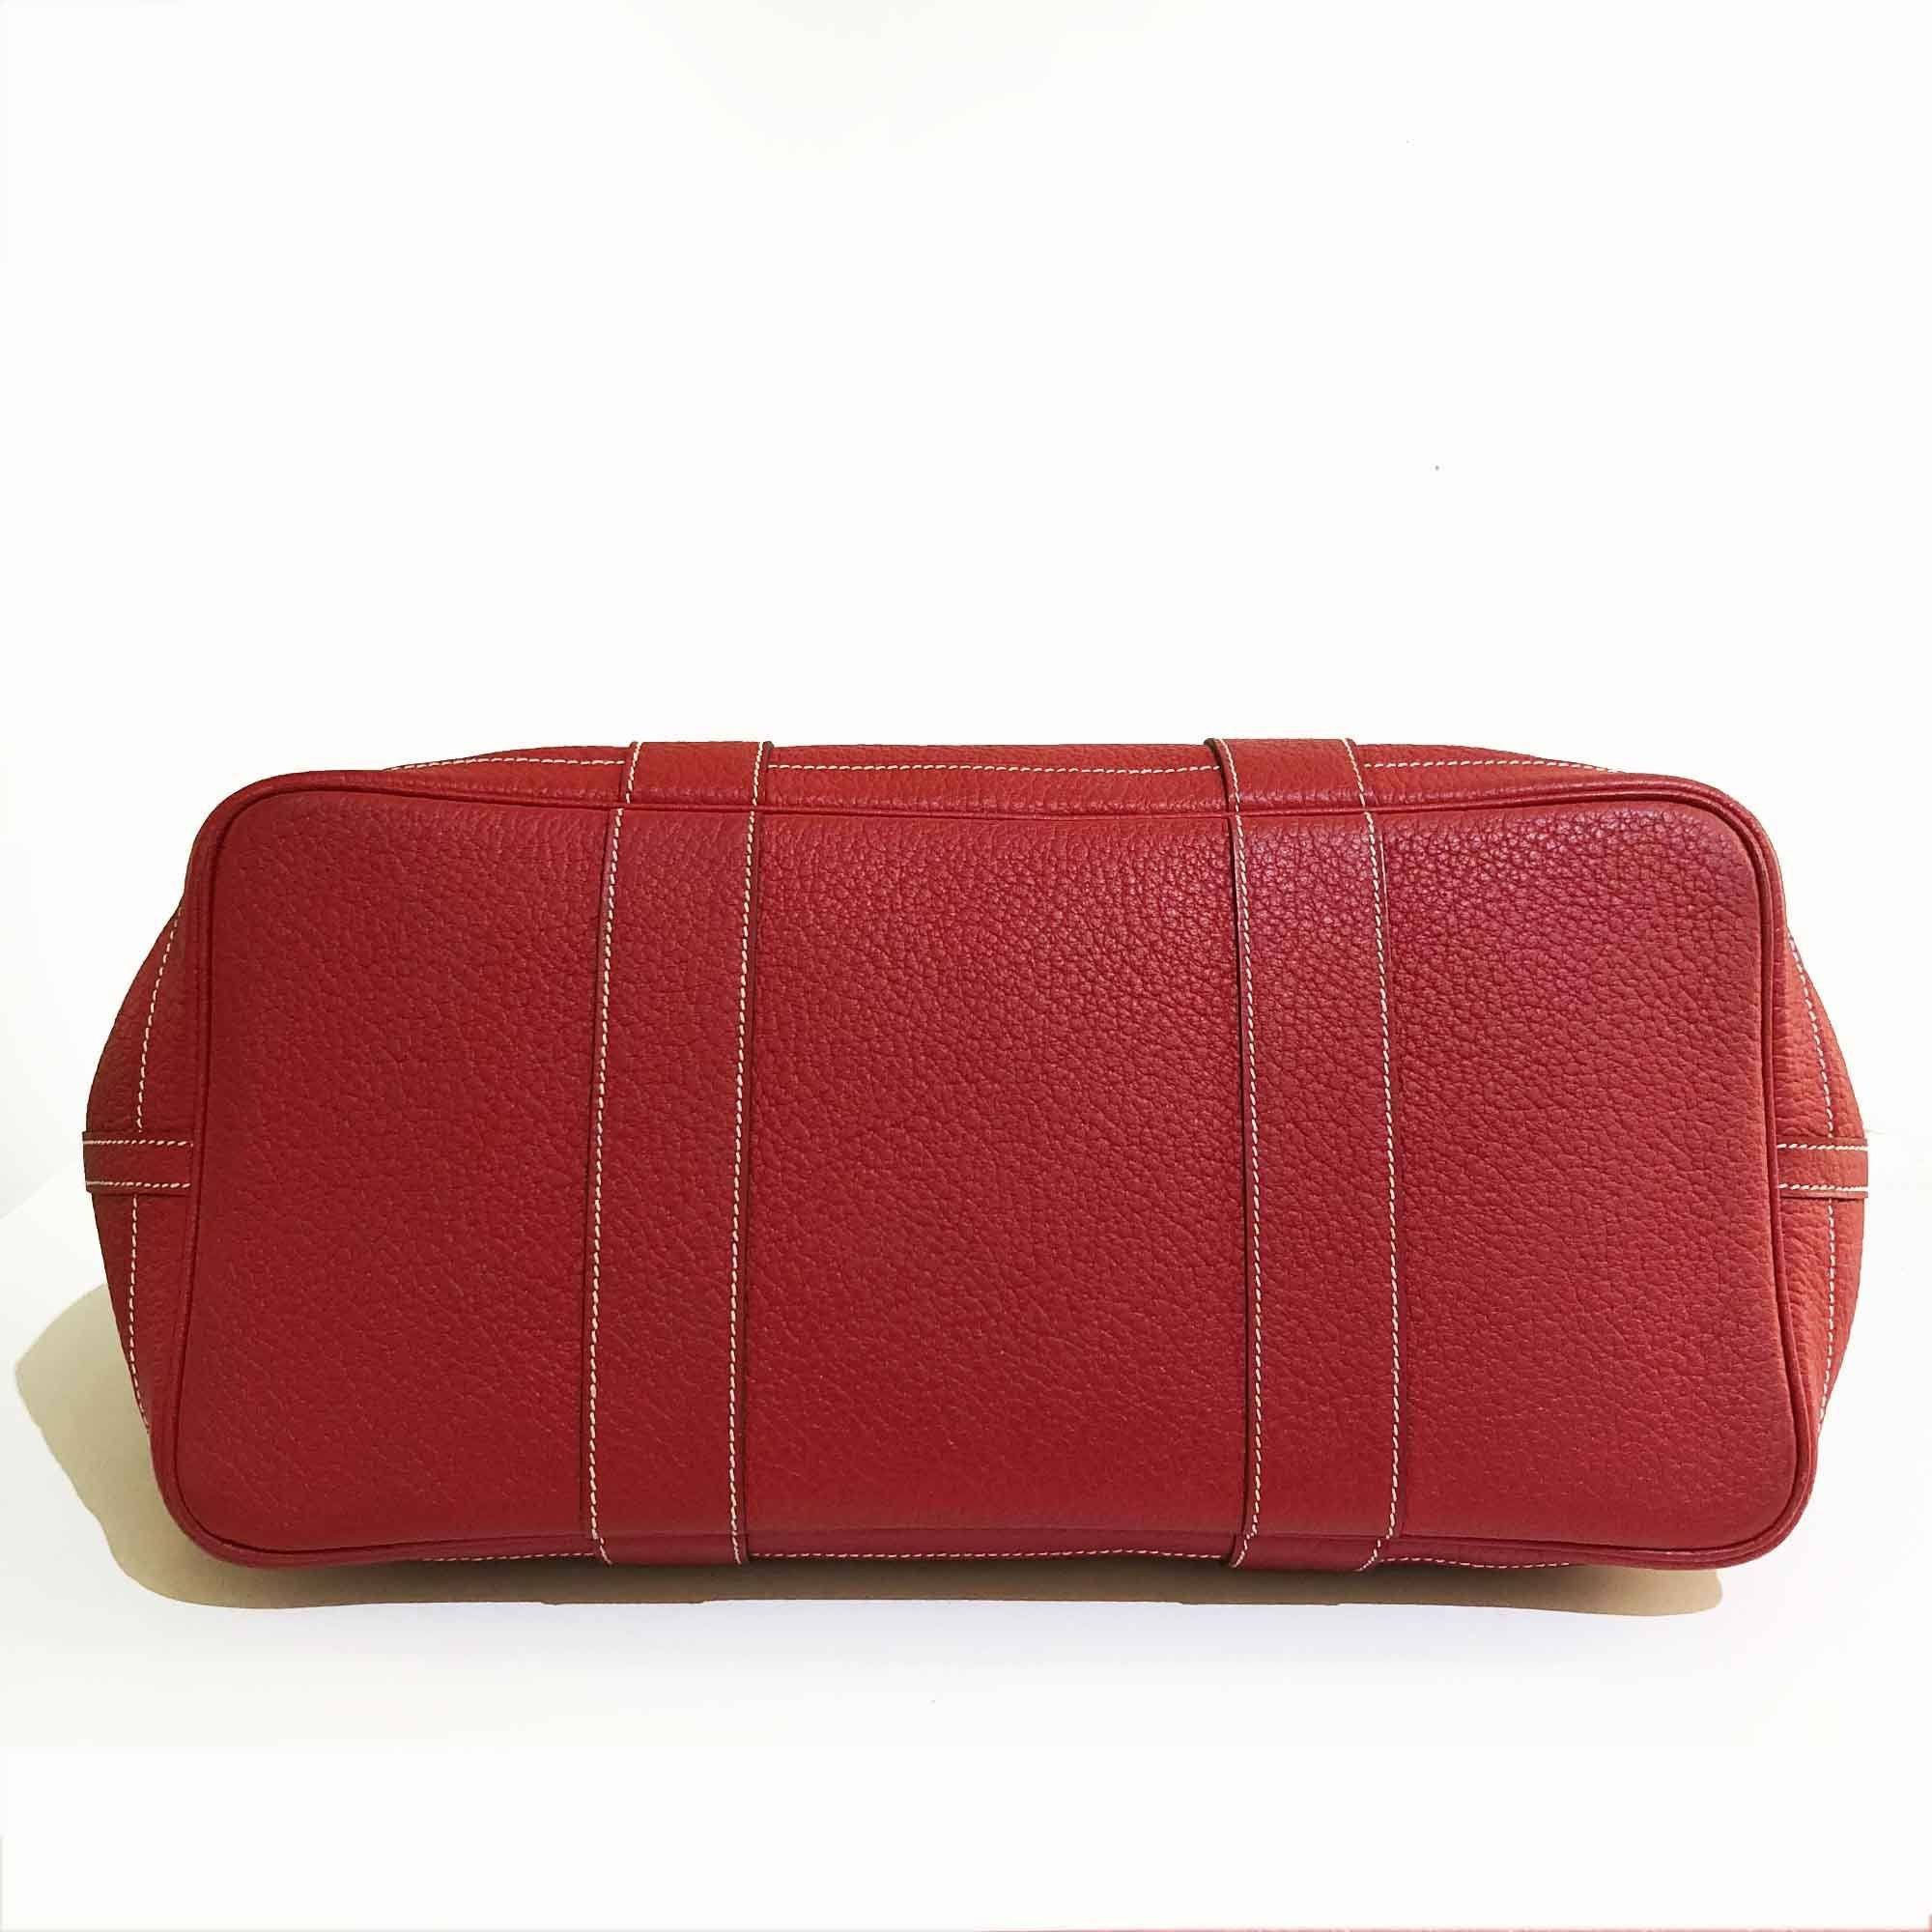 Hermes Red Garden Party Etoupe Bag MM